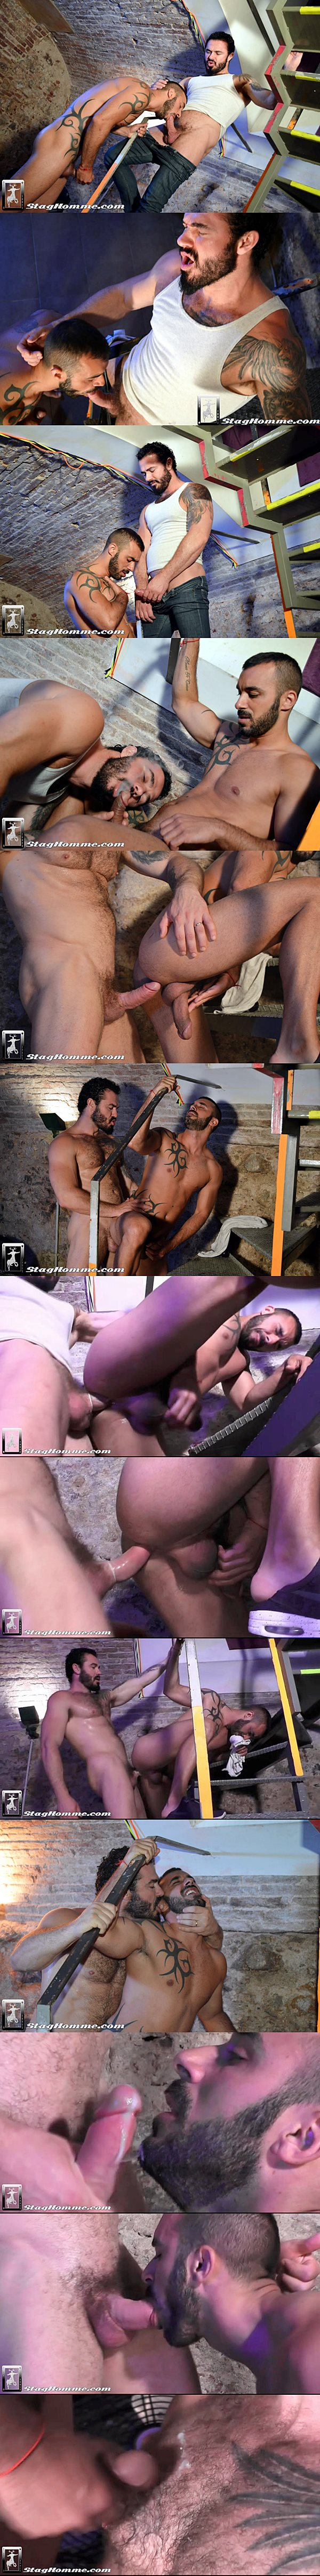 Jessy Ares fucks masculine Spanish hunk Xavi Duran's tight virgin ass before he gives Xavi a big facial at Staghomme 02